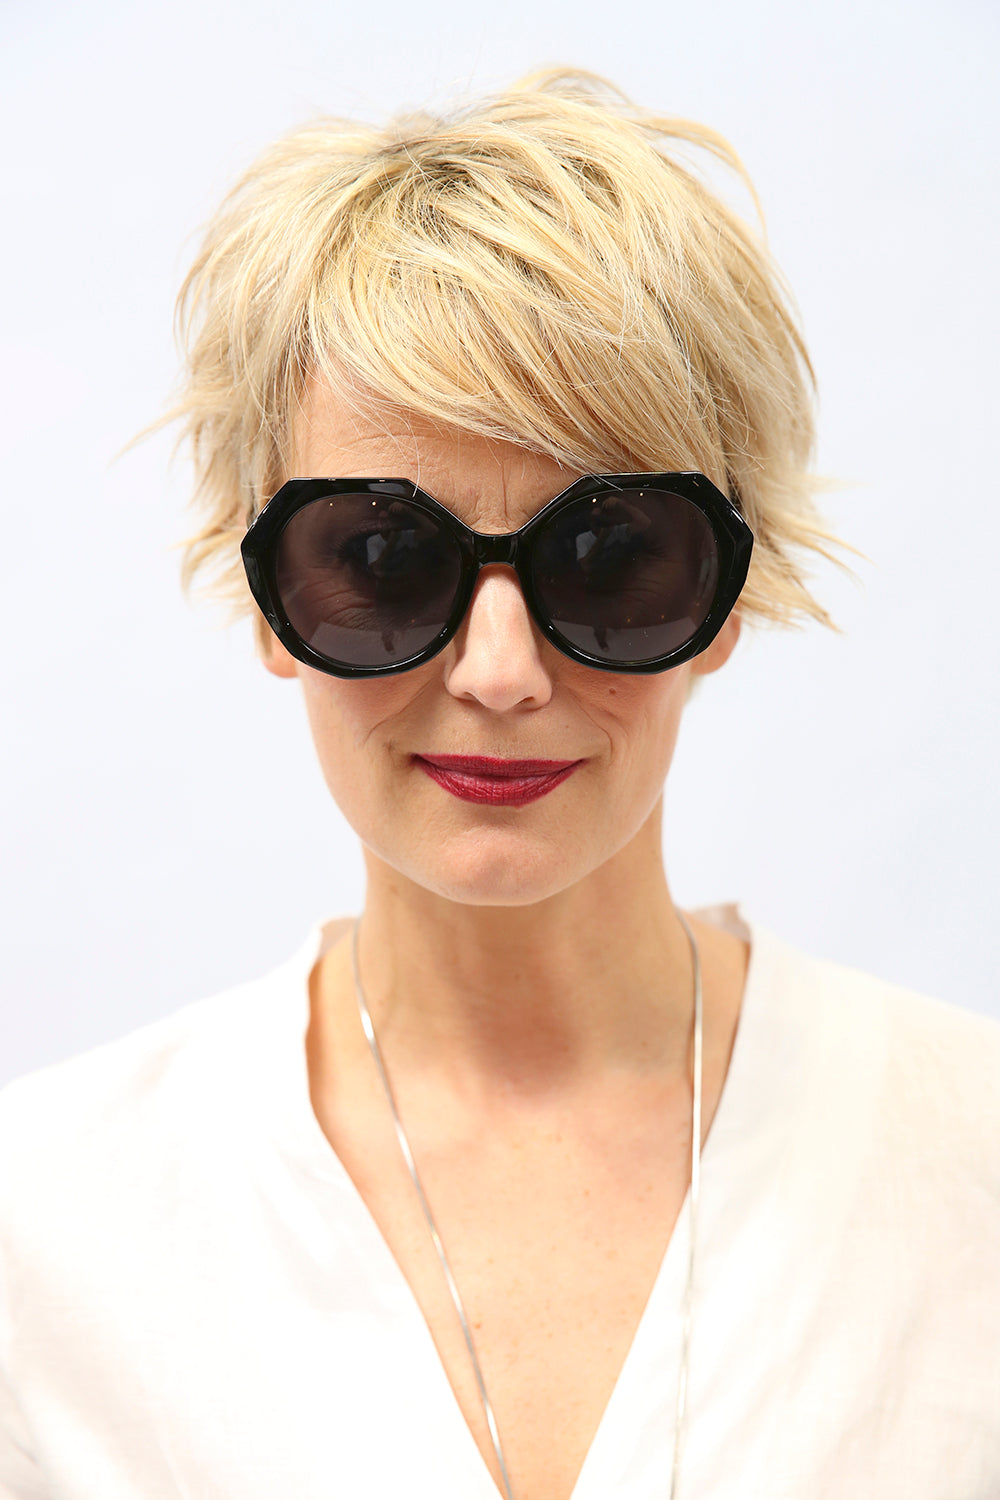 Terri Sunglasses | New Zealand Fashion Designer | Sunglasses | Annah Stretton